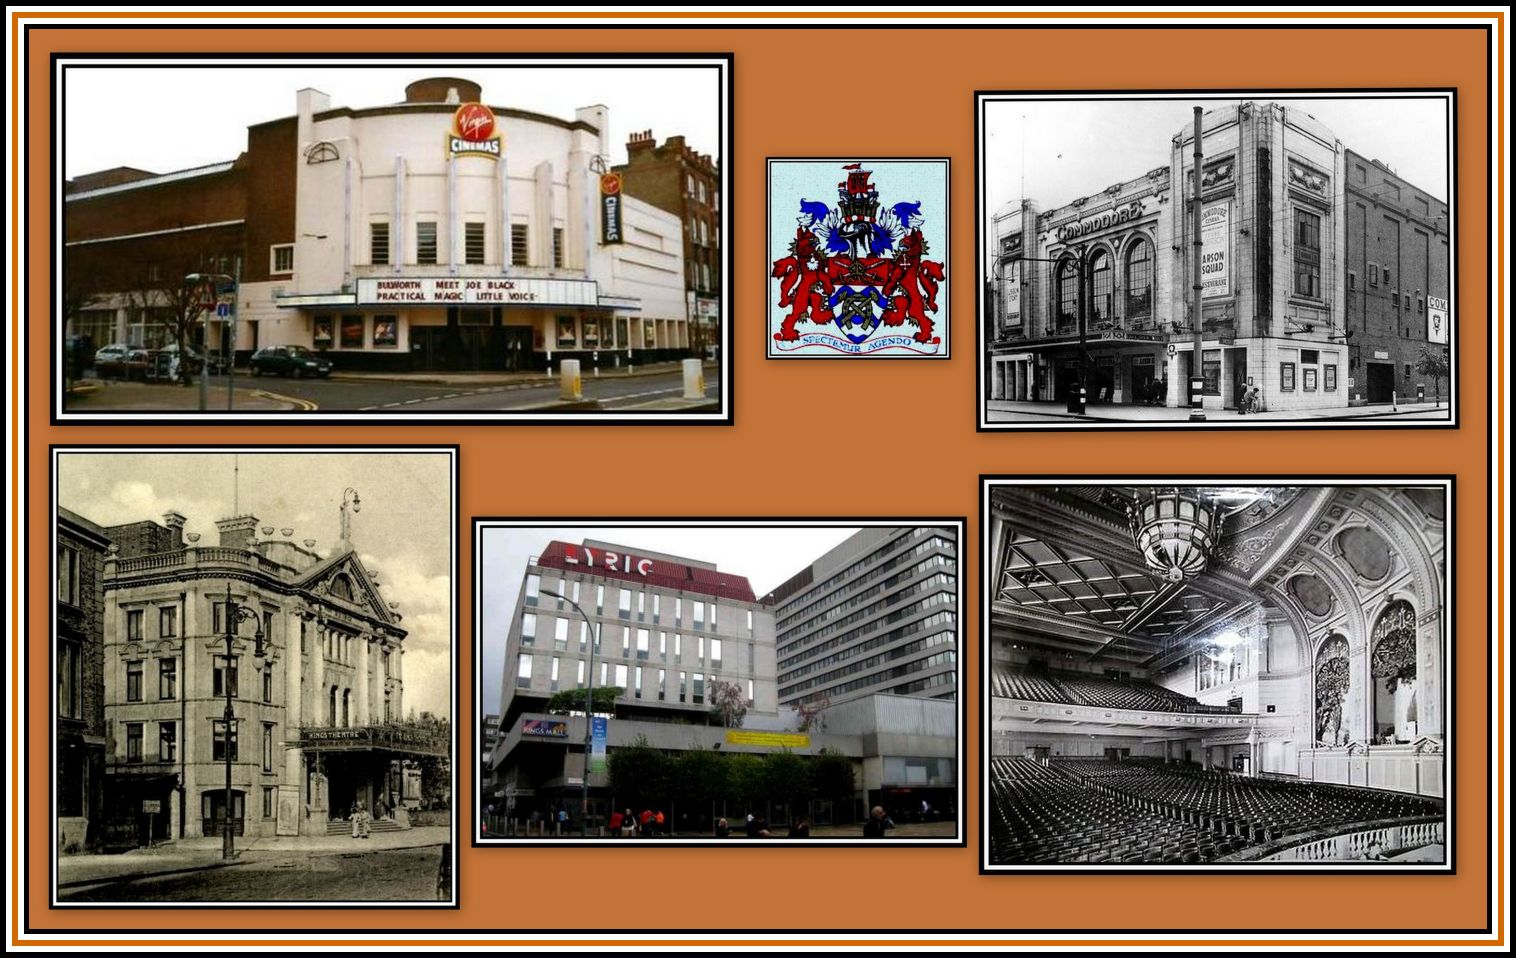 Cinemas and Theatres of Hammersmith Collage